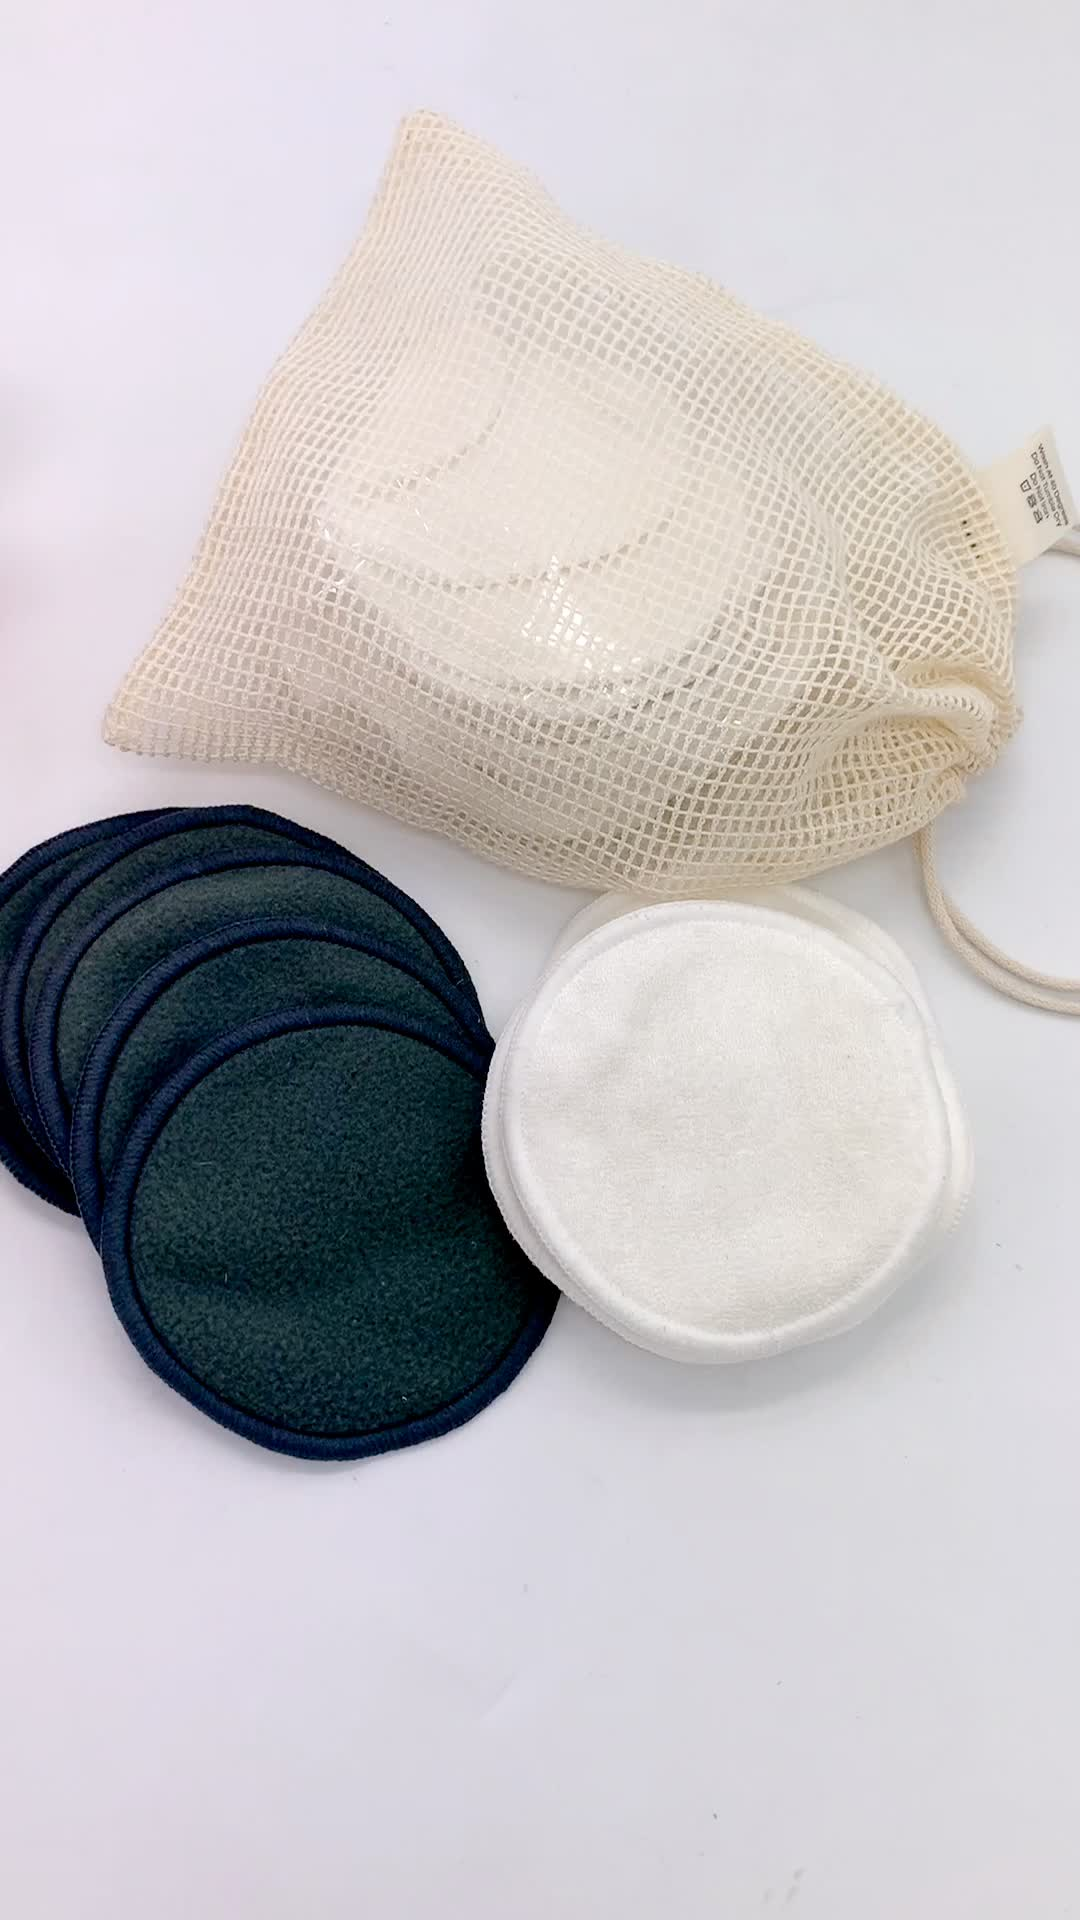 magic Reusable bamboo cotton make up remover pad washable With Laundry Bag